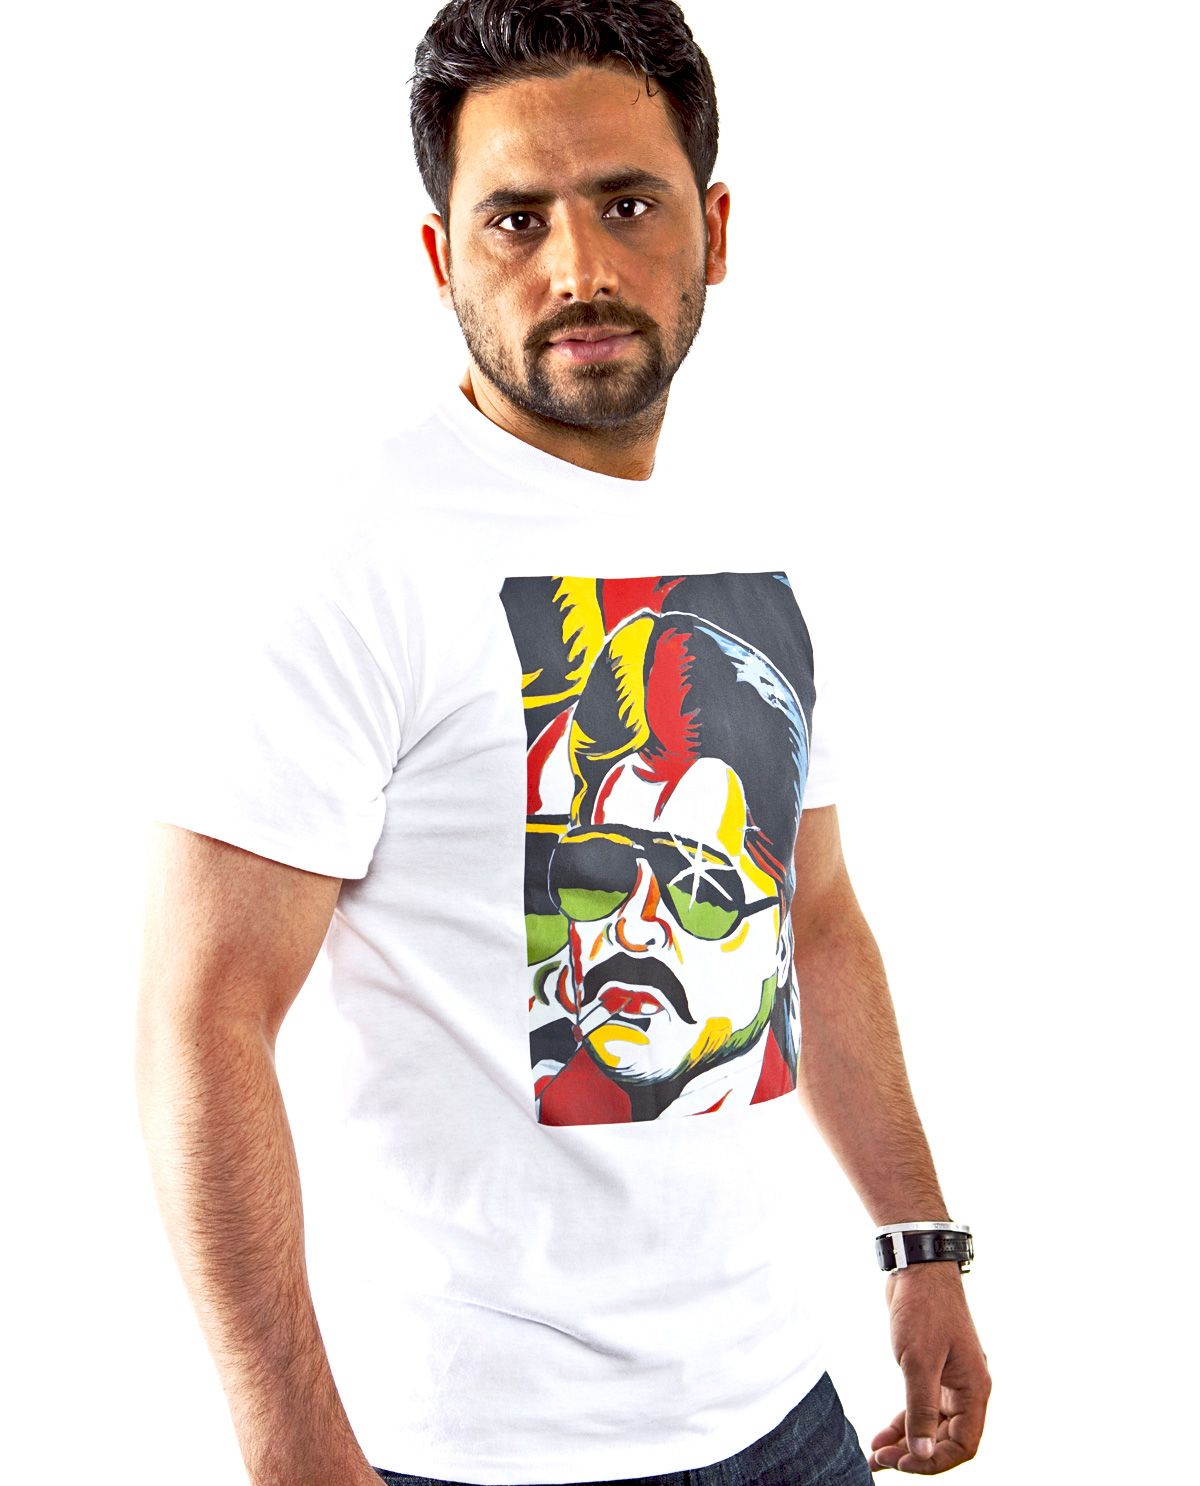 Rajnikanth Graphic design image on front t.shirts by Brown Man Clothing Co.